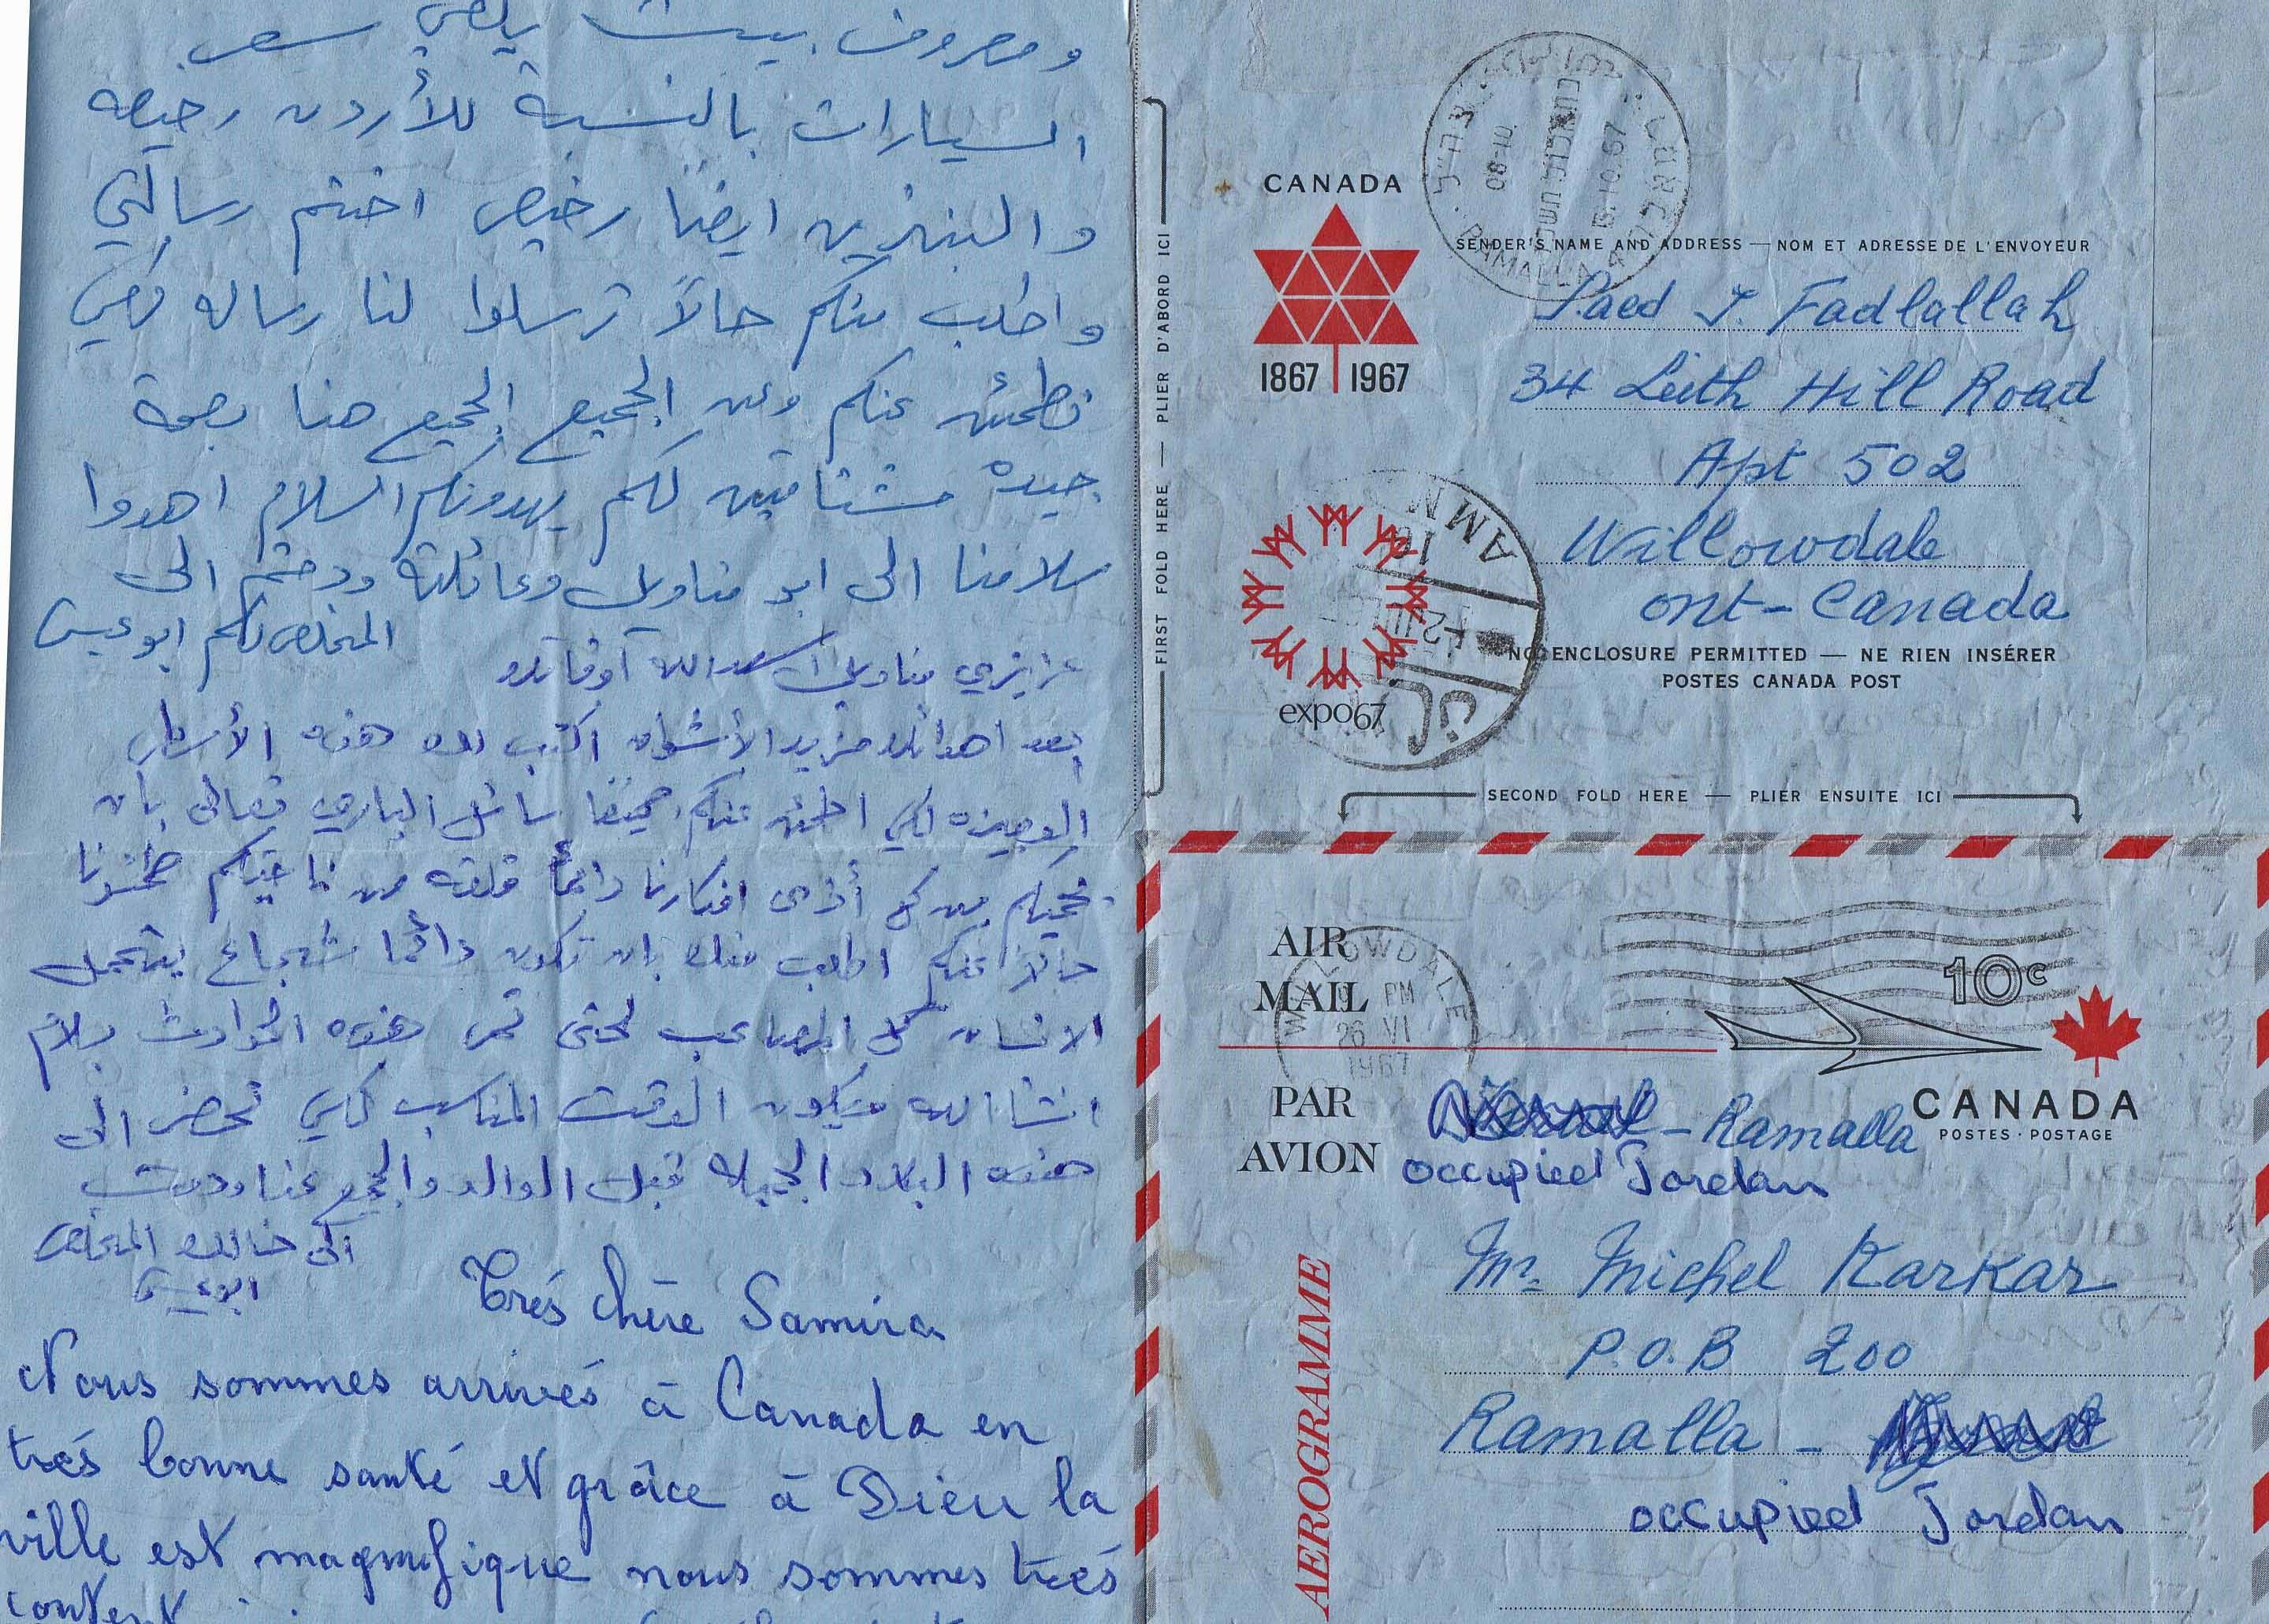 Jordanian post-1967 War mail to Israel via Red Cross: 26 VI 1967 aerogramme in Arabic from WILLOWDALE Canada to RAMALLA